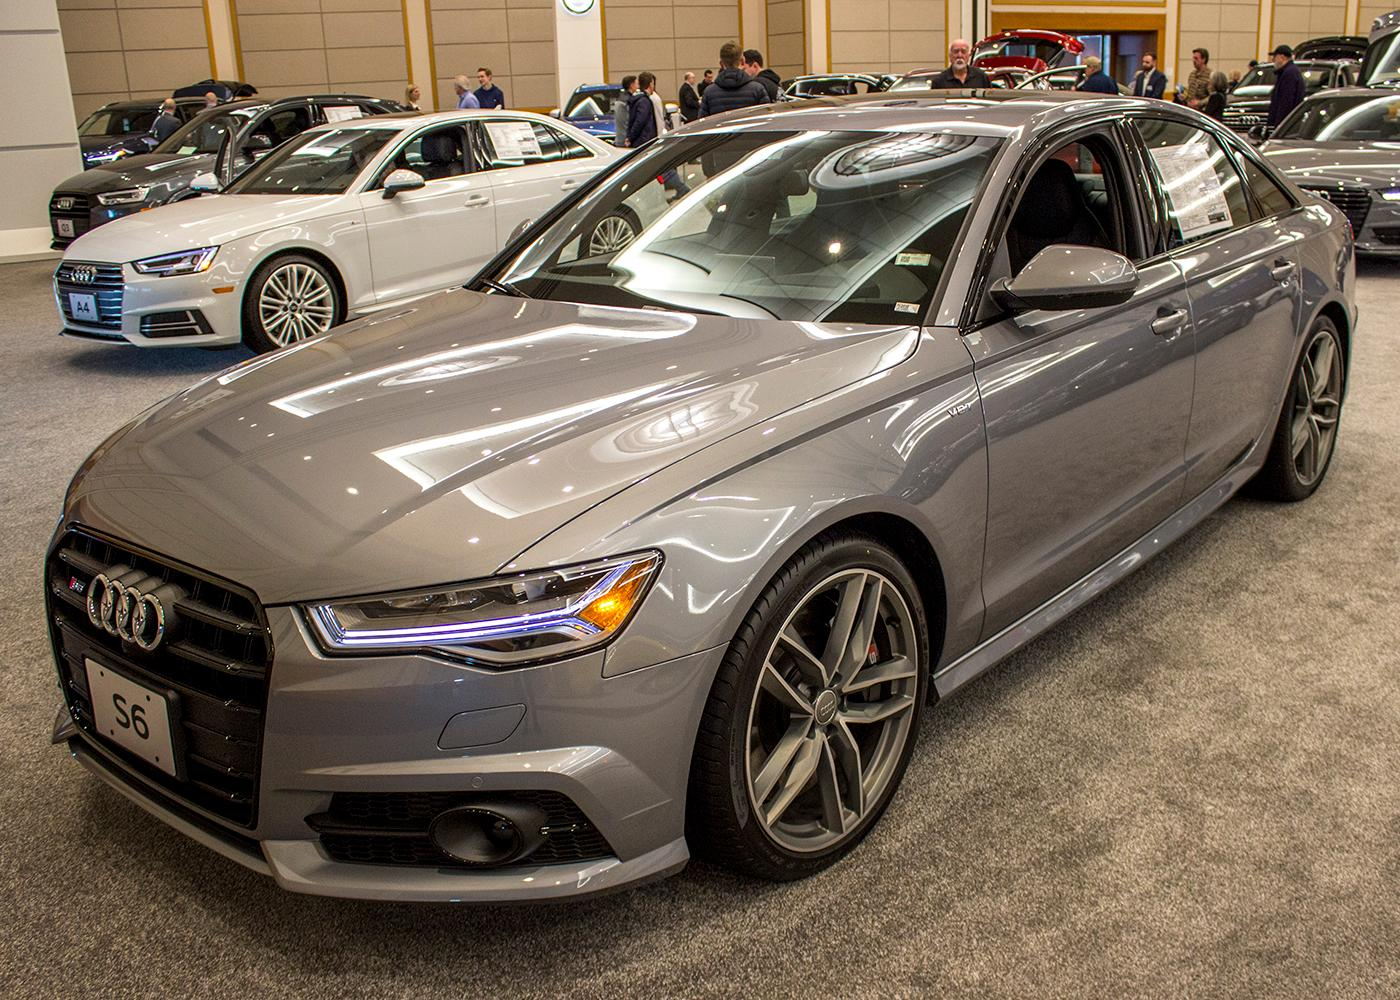 2018 Audi S6 Sedan 4.0T Quattro S tronic - The Portland International Auto Show began at the Oregon Convention Center on Jan. 25, 2018. The event drew prospective buyers and others who enjoyed looking at and comparing vehicles. Photo by Amanda Butt